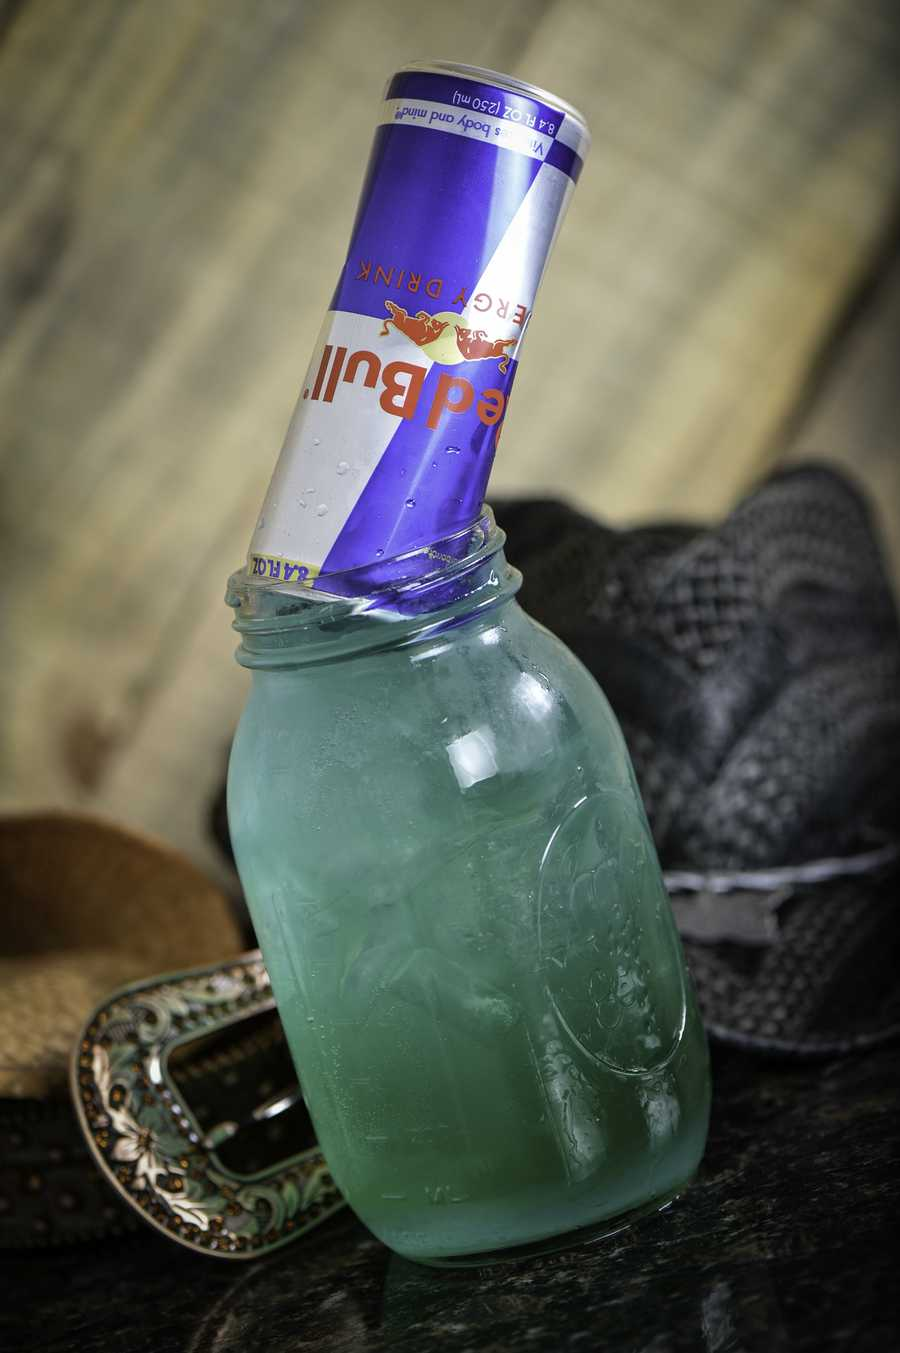 Red Bullfrog(32 oz mason jar)1 oz. Wave Blue Raspberry Vodka1 oz. Cruzan Raspberry Rum1 oz. Blue Curacao2 oz. Lemon-Lime Soda1/2 oz. Sweet & SourFill 32oz mason jar ¾ with ice and build drink in the glass.Open and invert Red Bull can into the drink and serve.Recommend over: cocktail with Redbull.